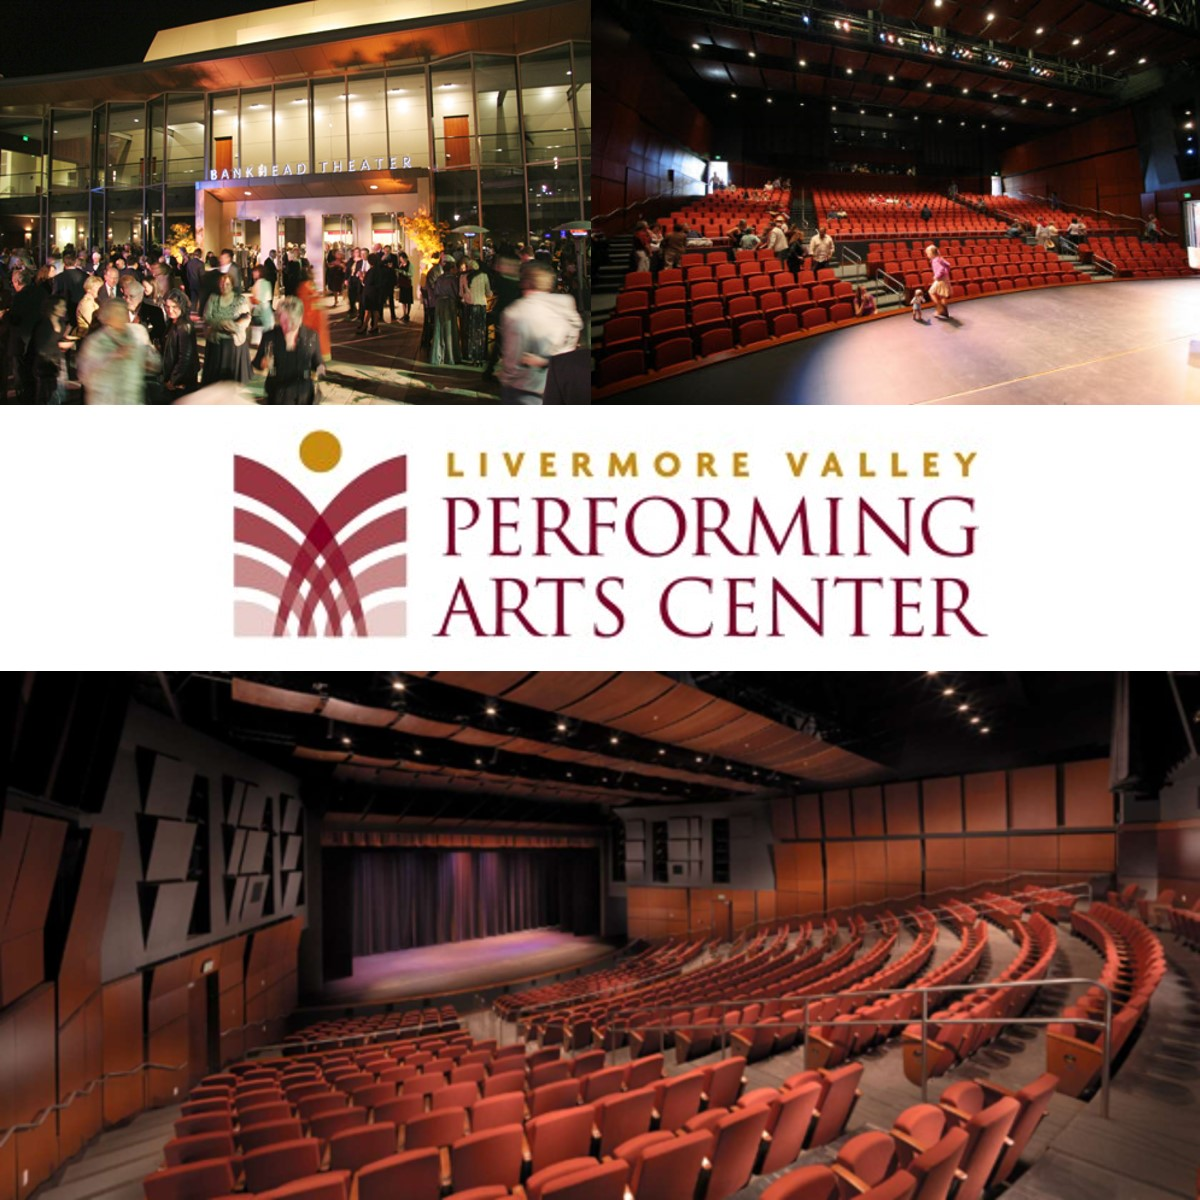 Livermore Valley Performing Arts Center.jpg